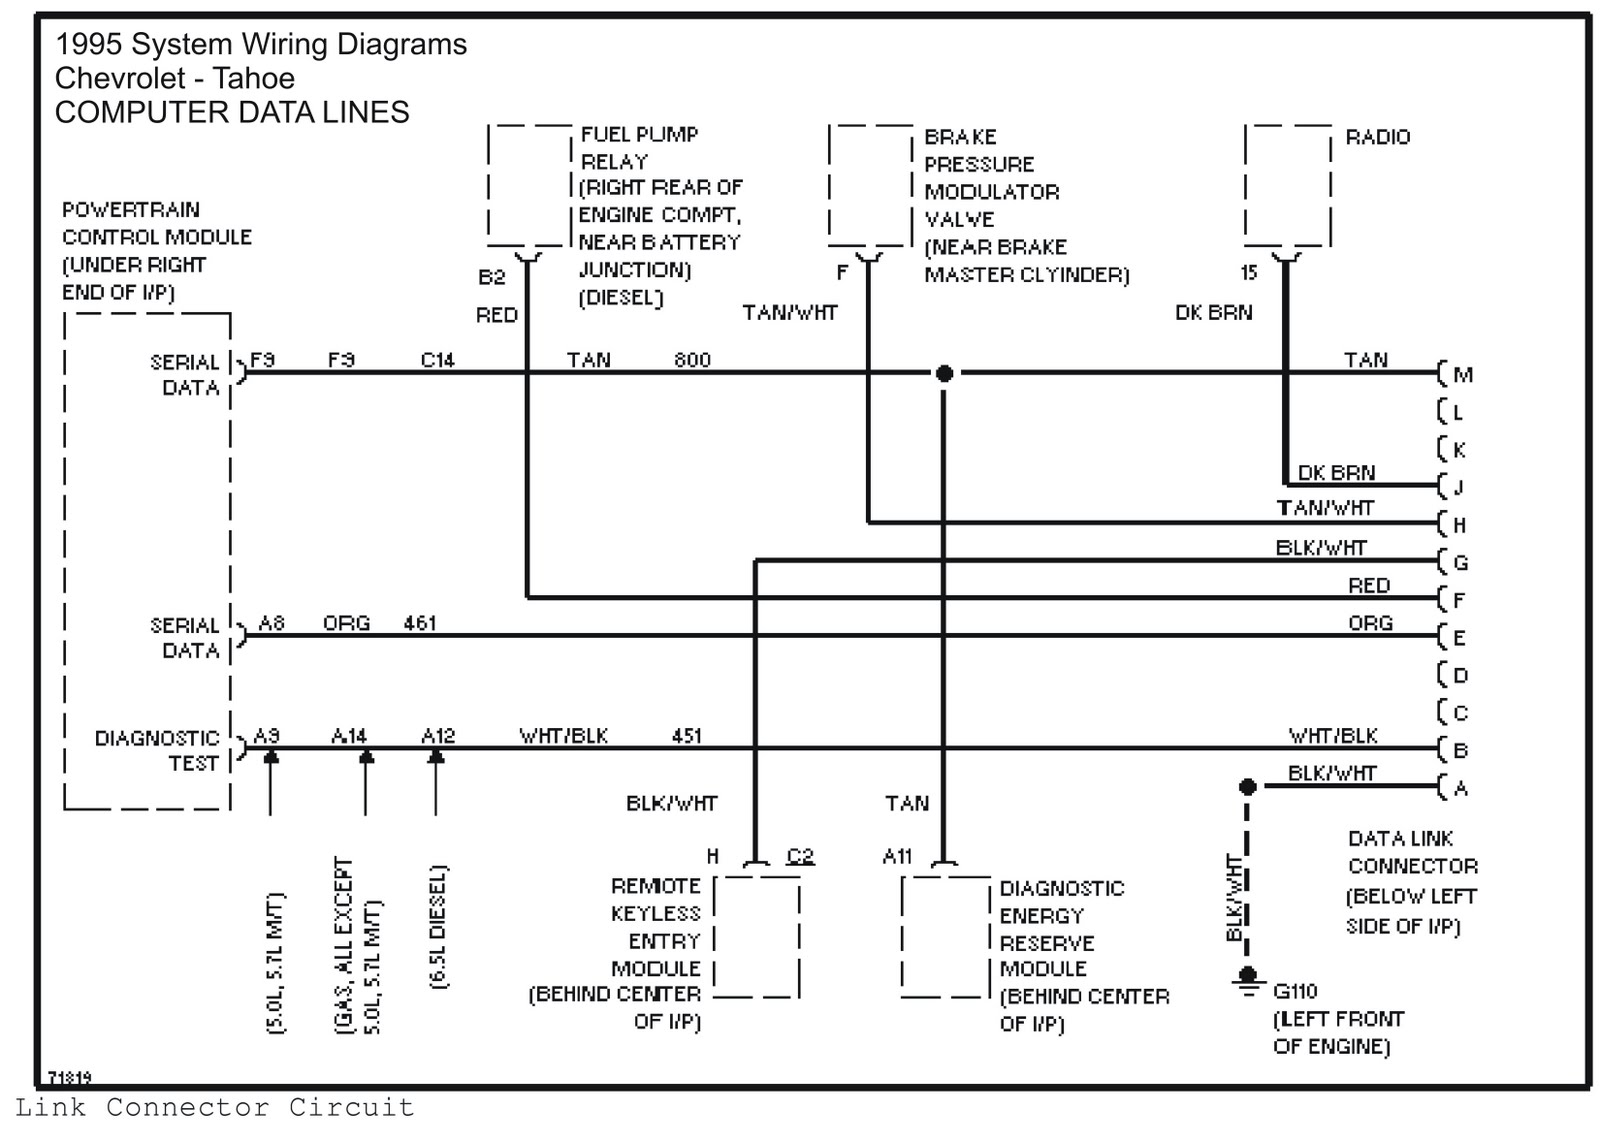 1995 system wiring diagrams chevrolet tahoe computer data 1995 chevy wiring  diagram